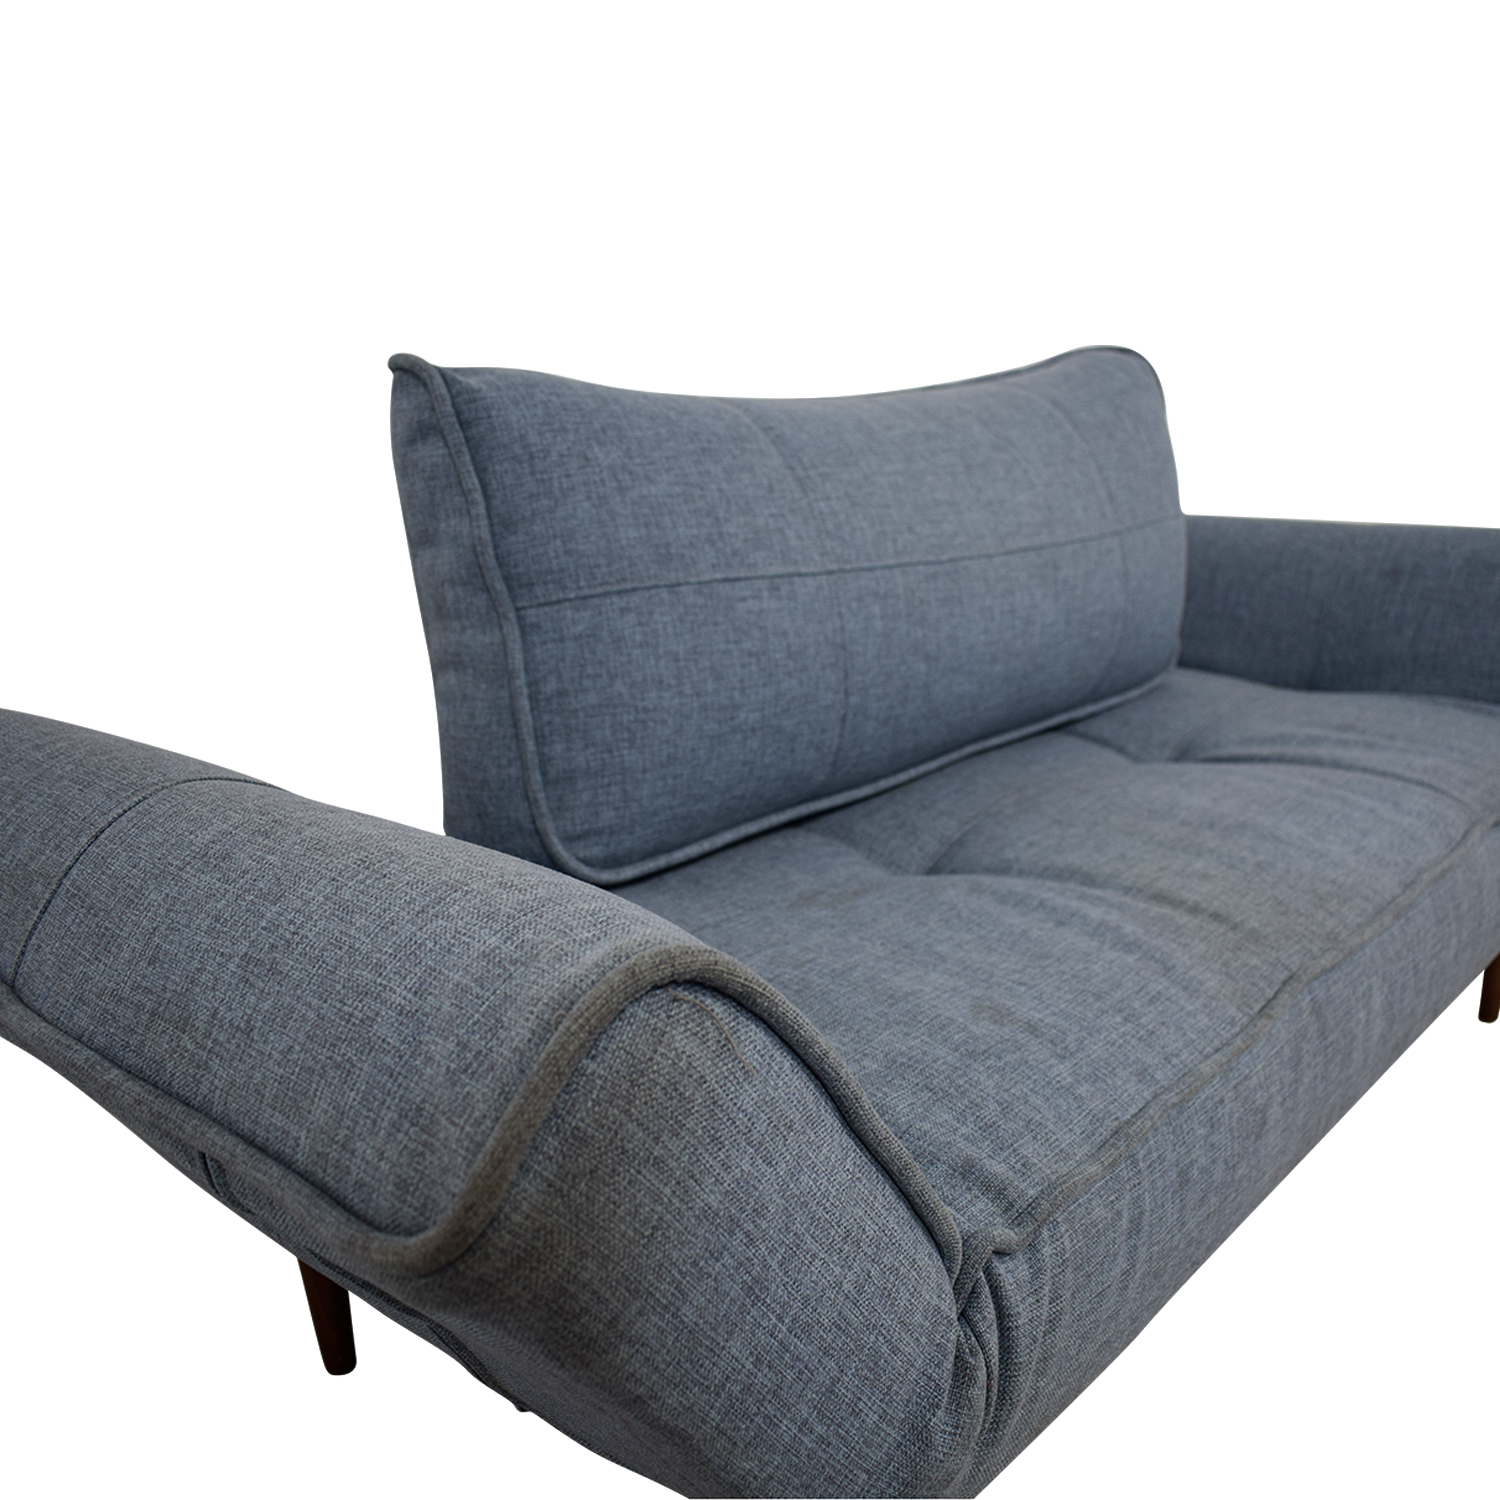 Blue Single Cushion Futon With Back Pillow / Sofas